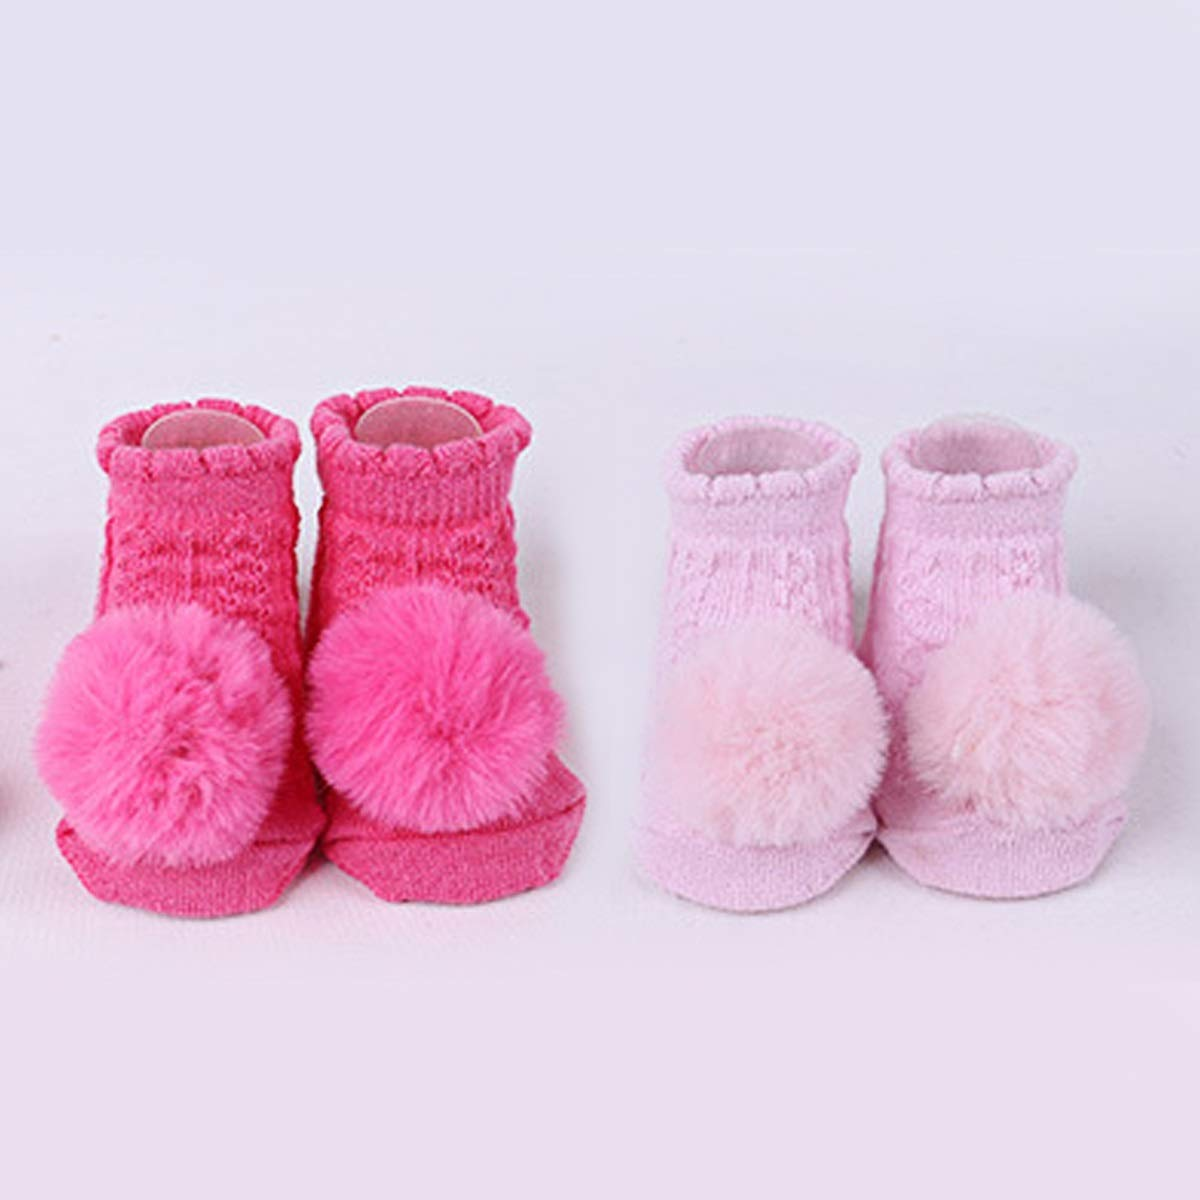 2 Pair Cute Baby Girls Pom Pom Breathable Socks Newborn Cotton Socks for 0-6 Month Color : White+Pink